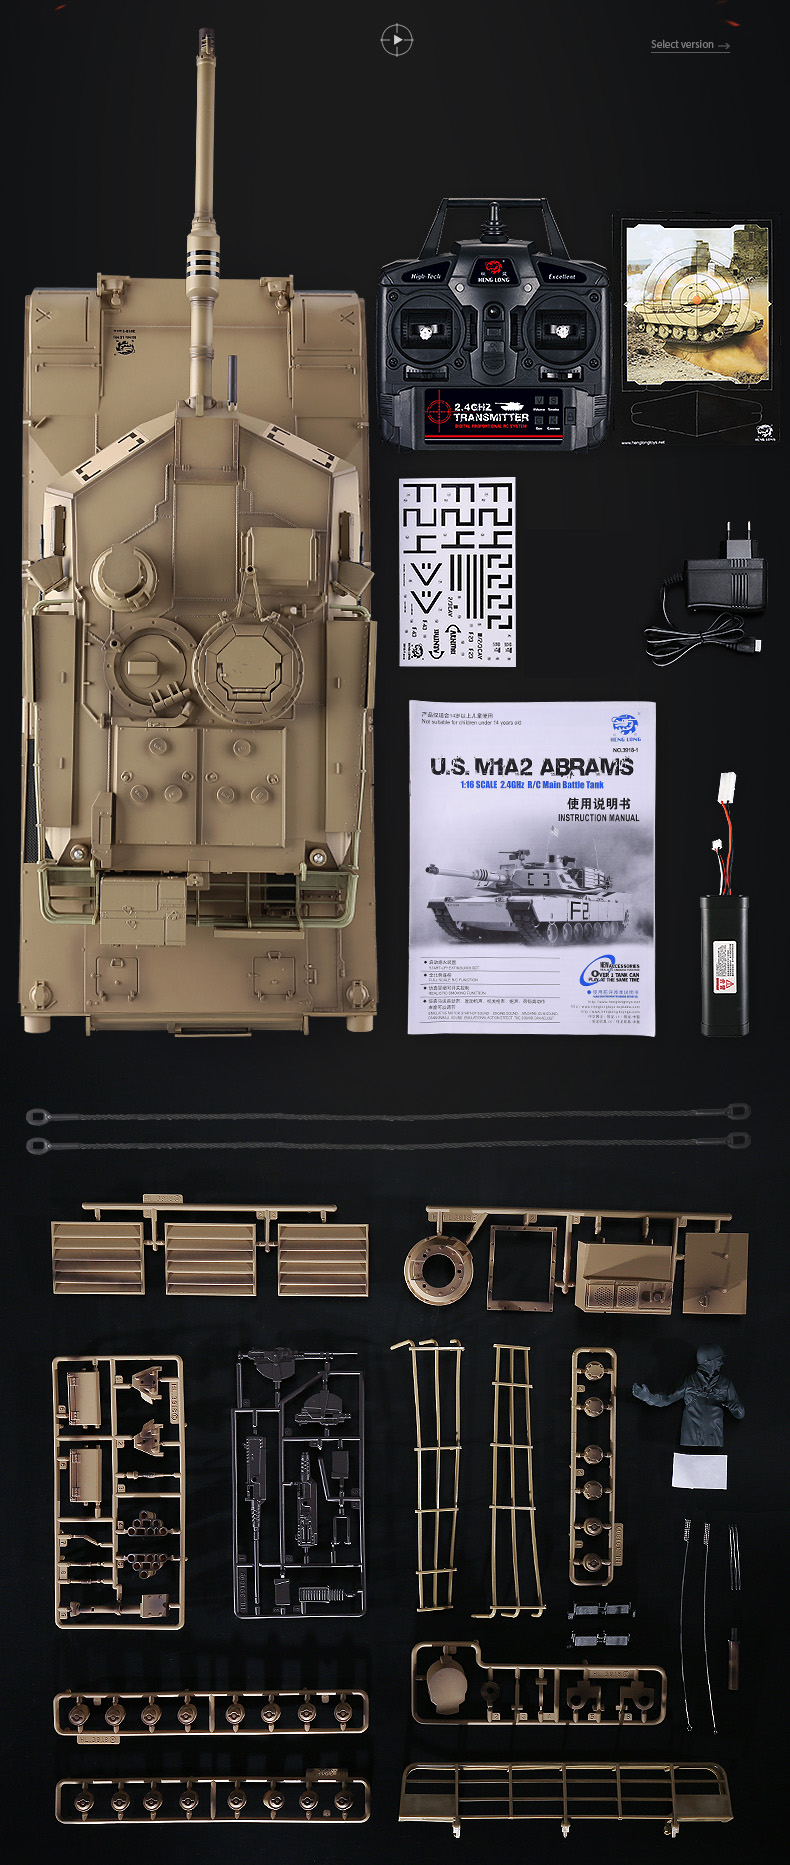 (HL 3918 Basic Plastic Parts Edition) 2.4GHz Radio Remote Control 1/16 Scale Model Tank, HENG-LONG U.S. M1A2 ABRAMS RC Main Battle Tank